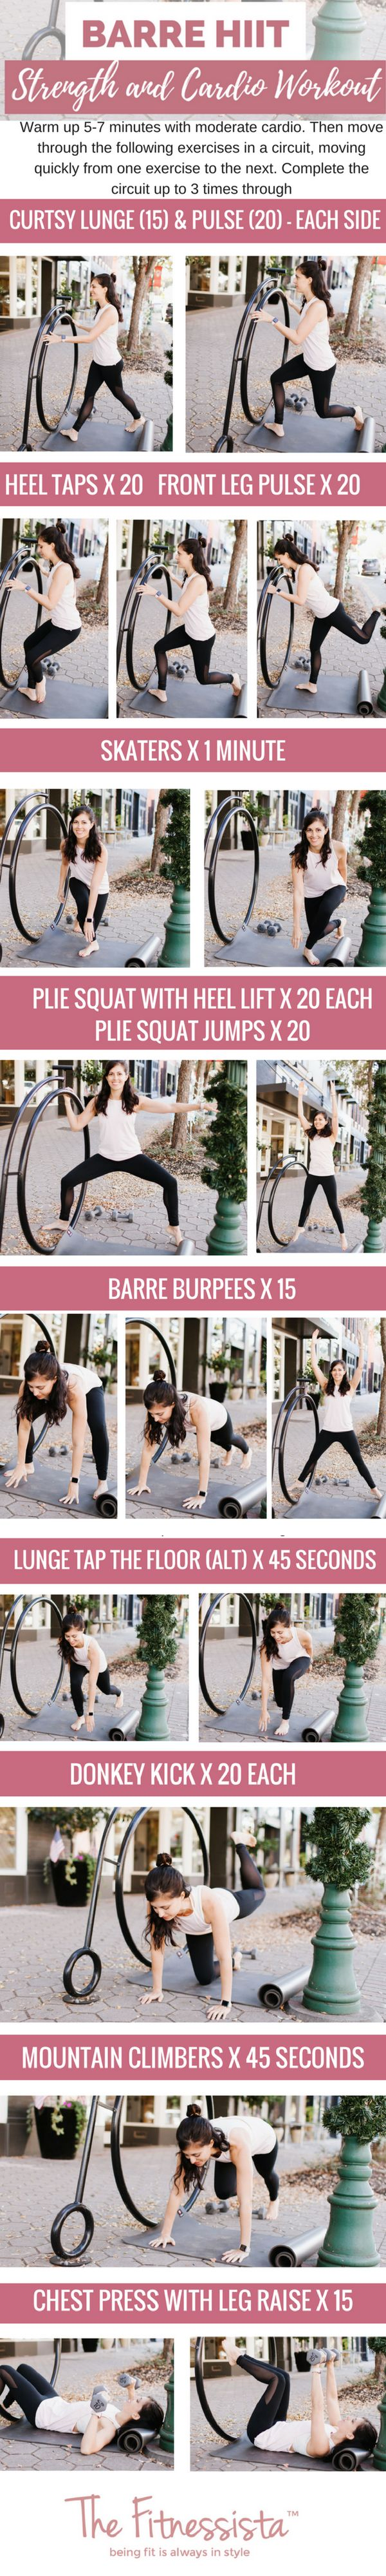 A Barre HIIT workout that combines sweaty cardio intervals with muscular endurance training. Get super lean muscles without needing to lift heavy weights! You can do this one anywhere. fitnessista.com #barreworkout #HIITworkout #athomeworkout